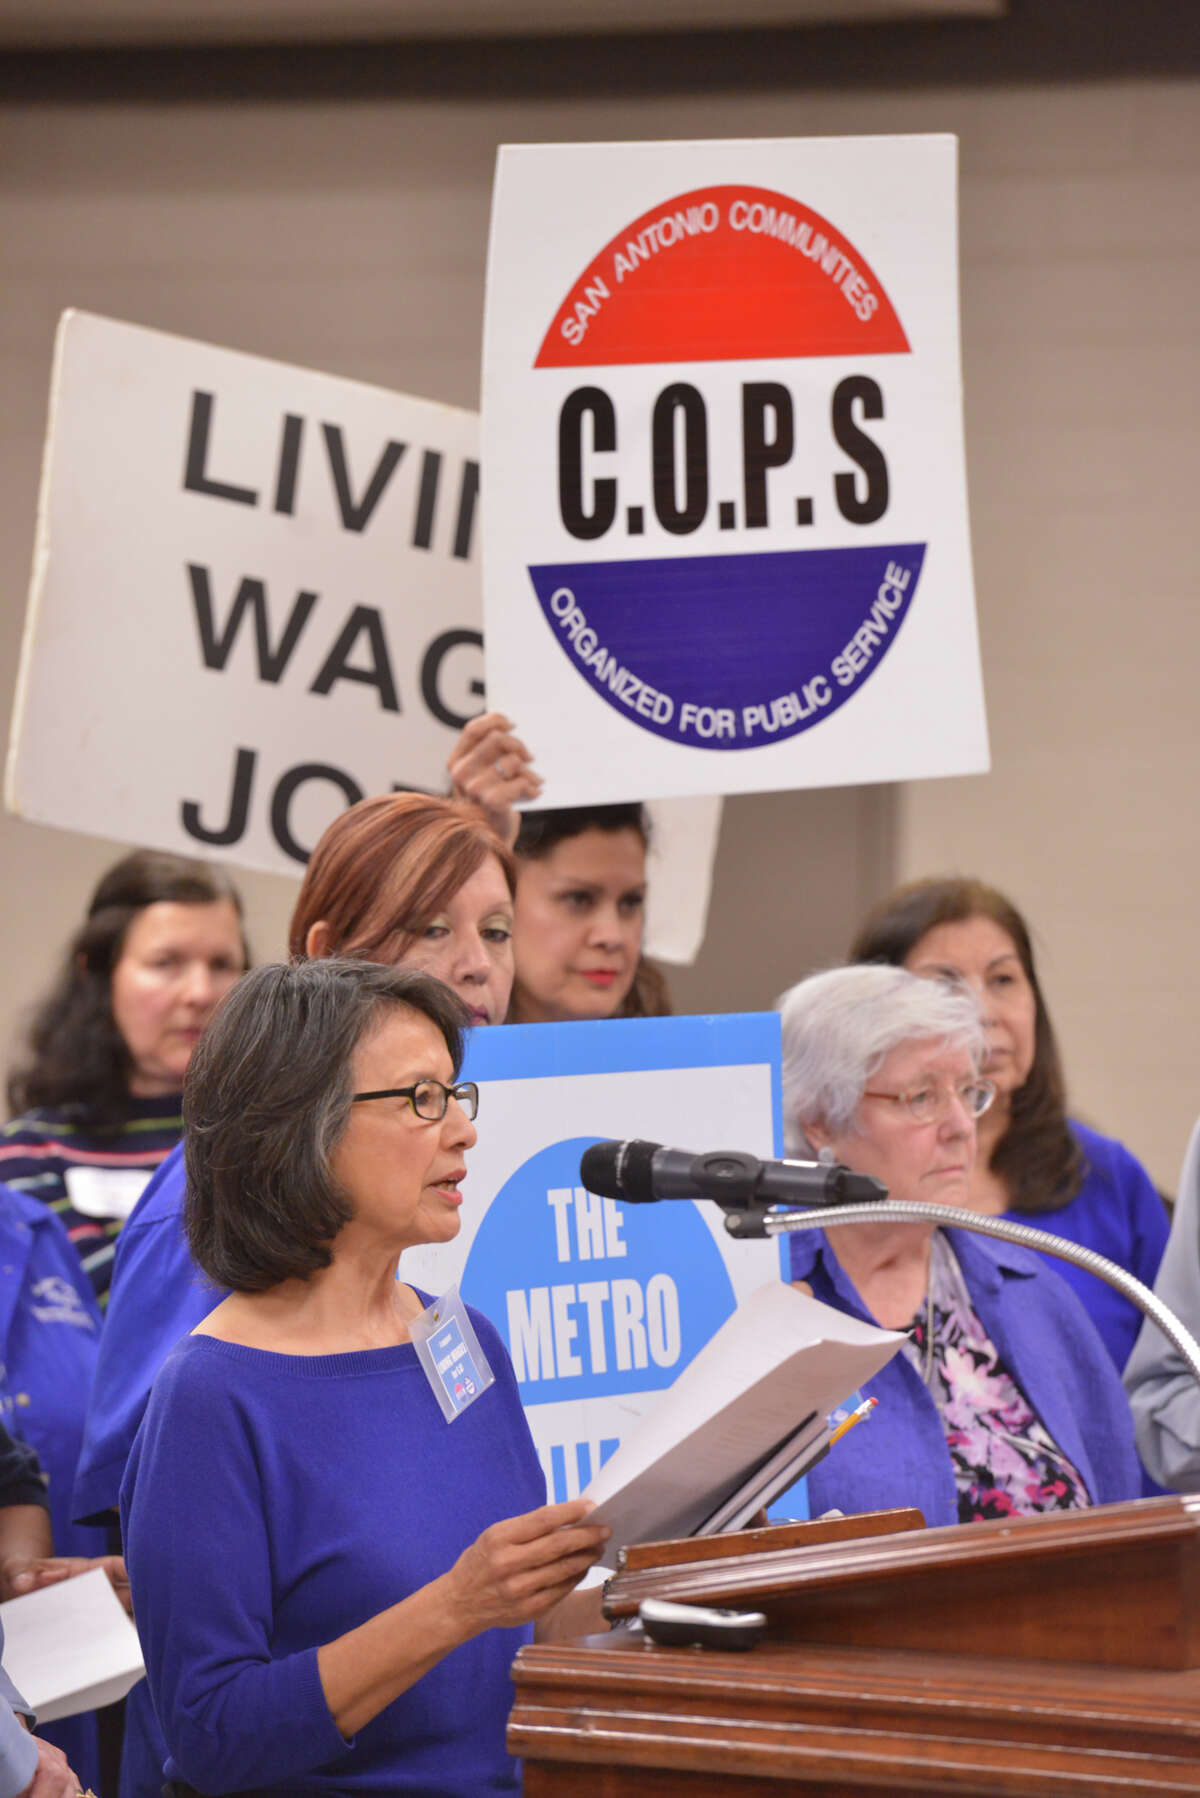 Maria Tijerina of the Community Organized for Public Service (COPS) and METRO Alliance speaks during an SIASD Board meeting in support of SAISD district staff receiving a living wage.